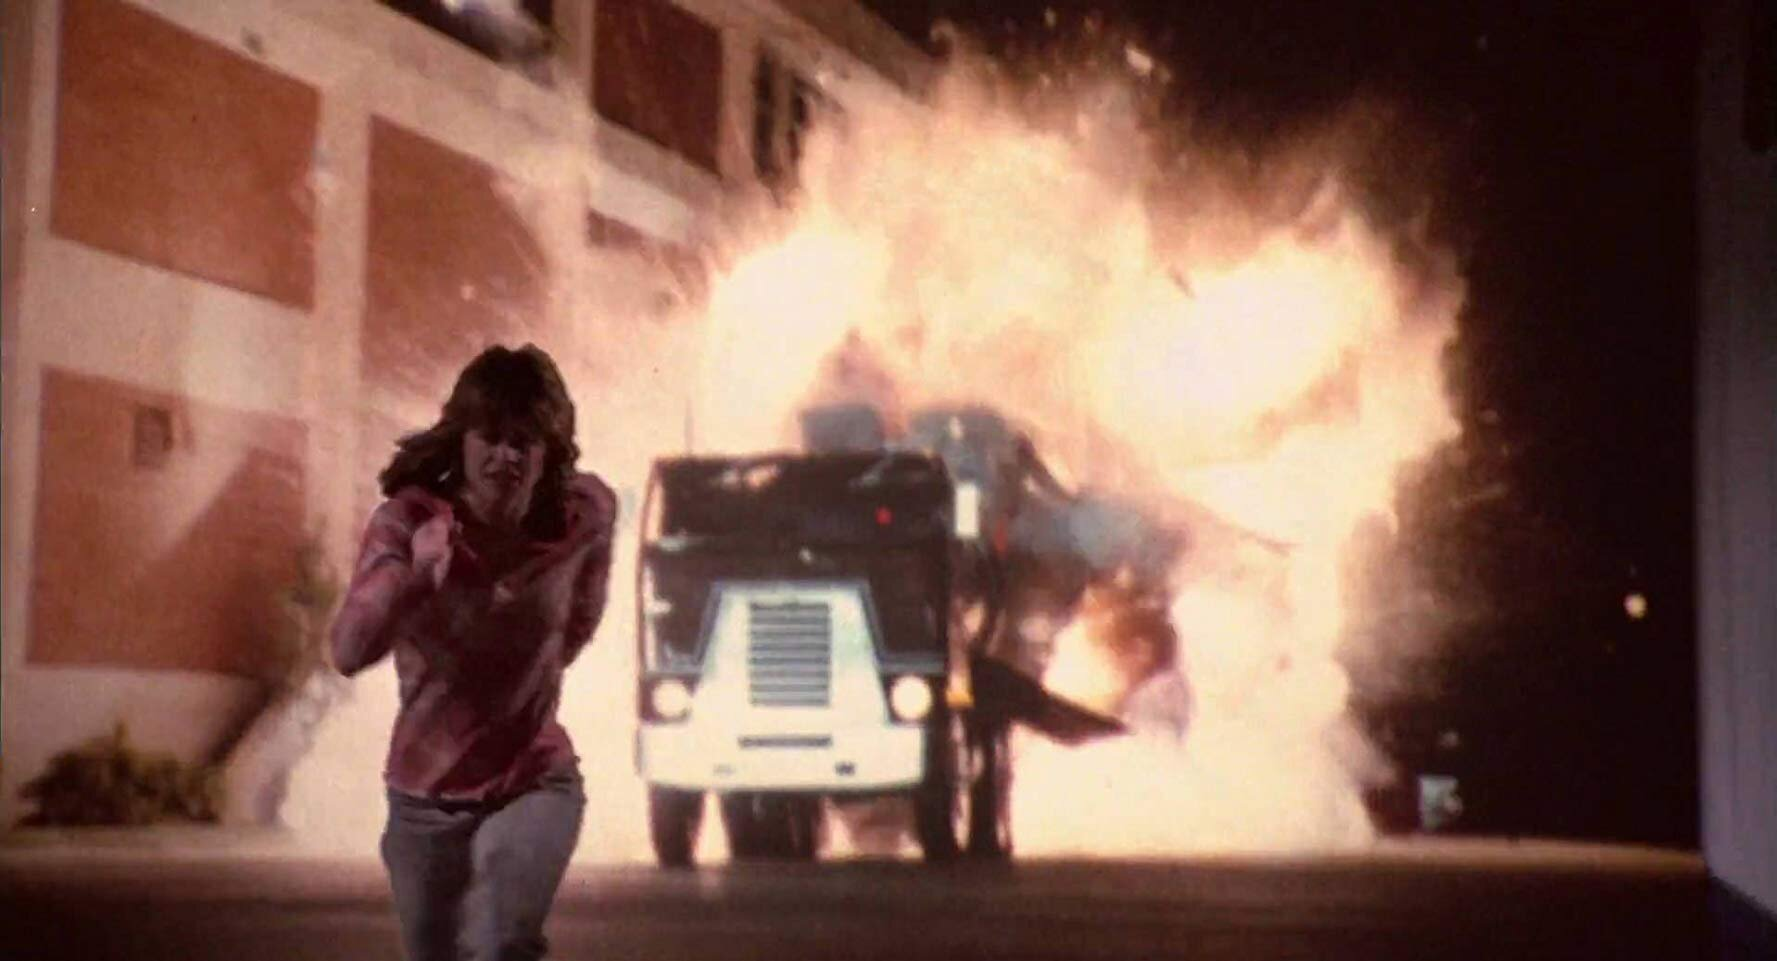 Tanker truck explosion as rear-projected behind Linda Hamilton.